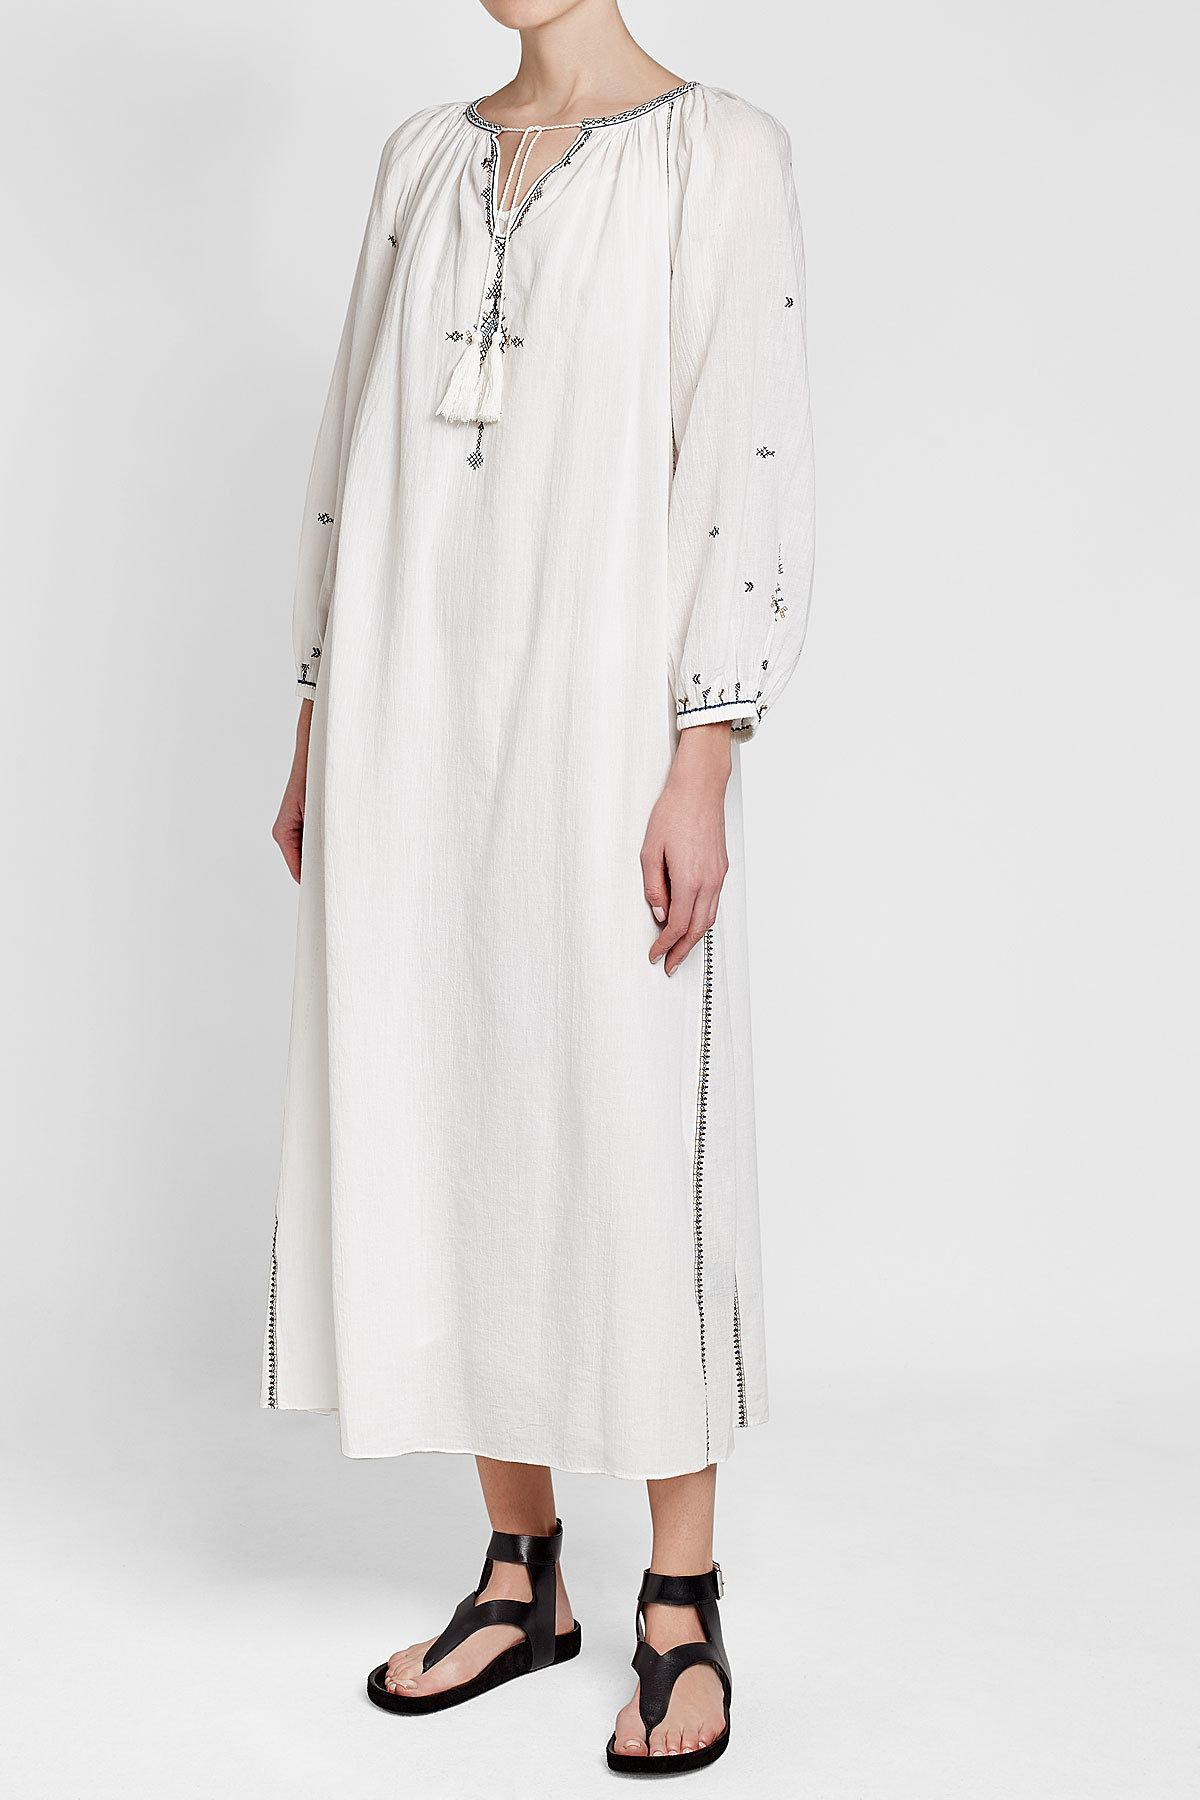 Meadlon dress - White Isabel Marant w2esopcM3